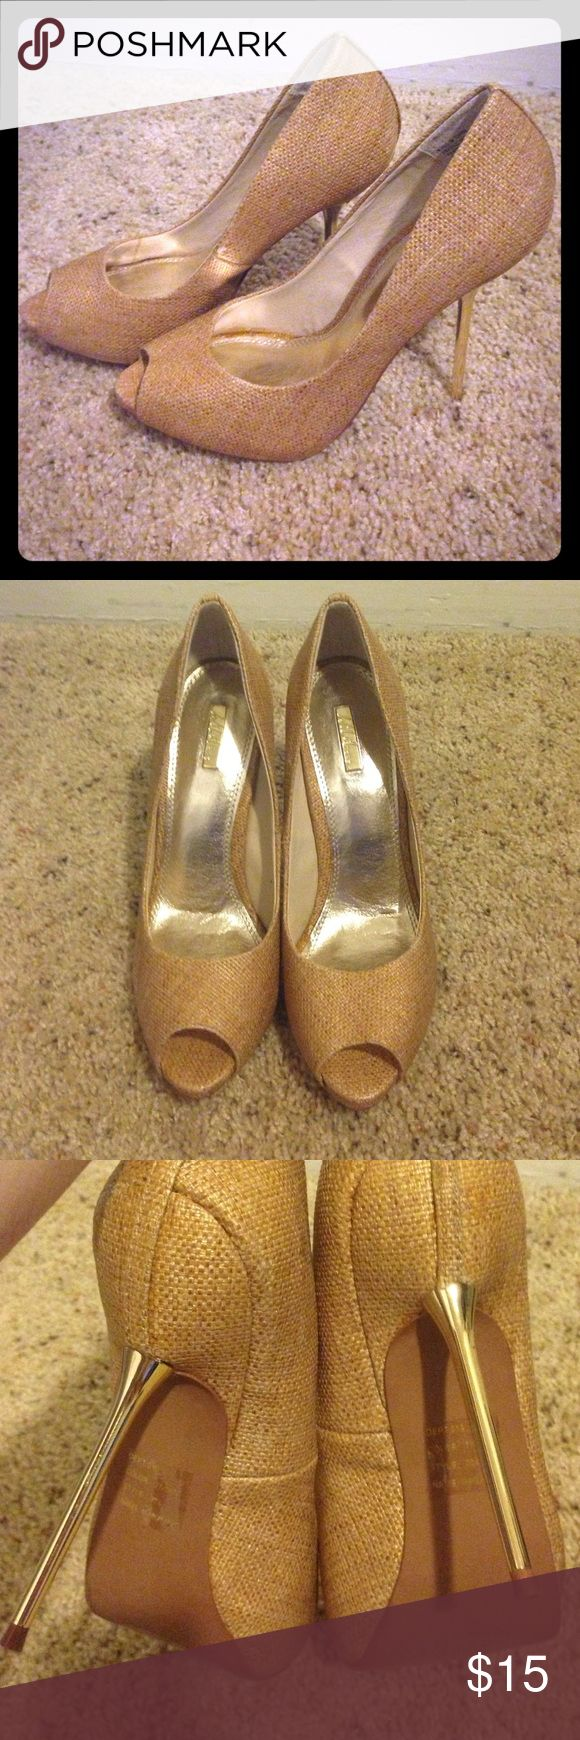 """Sexy woven fabric with gold stilettos! NWOT 8 Incredibly sexy tan woven fabric with shiny gold stilletos! Never worn and in perfect condition! Size 8 with 3.5"""" heel and 1/2"""" platform. Wild Pair Shoes Heels"""